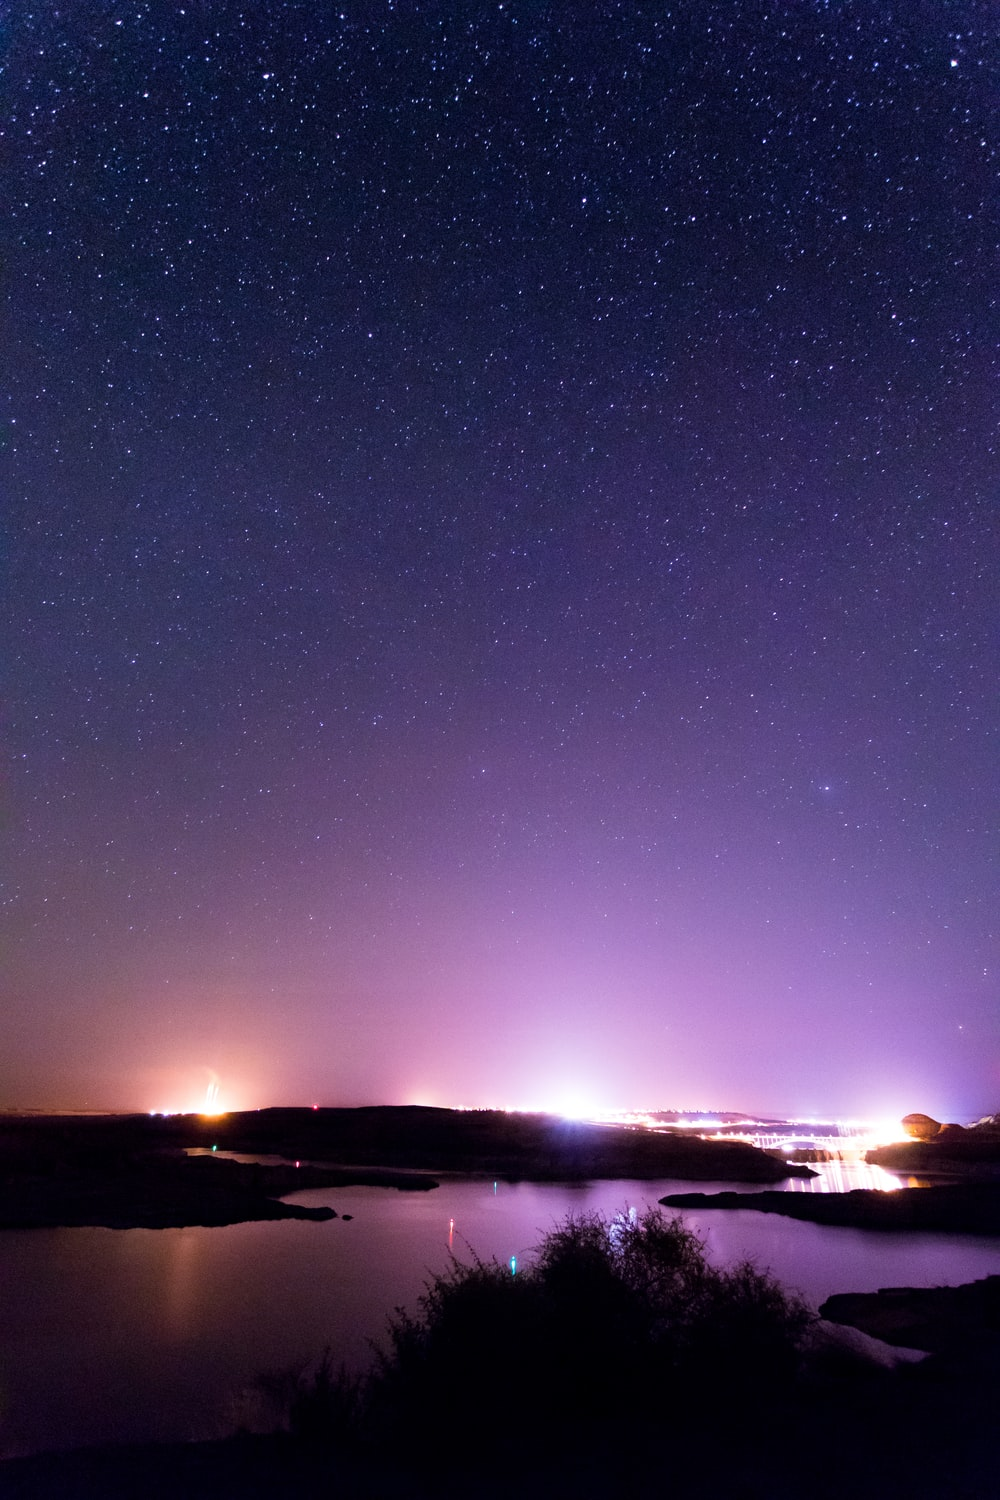 silhouette photography of islands under starry sky during nighttime